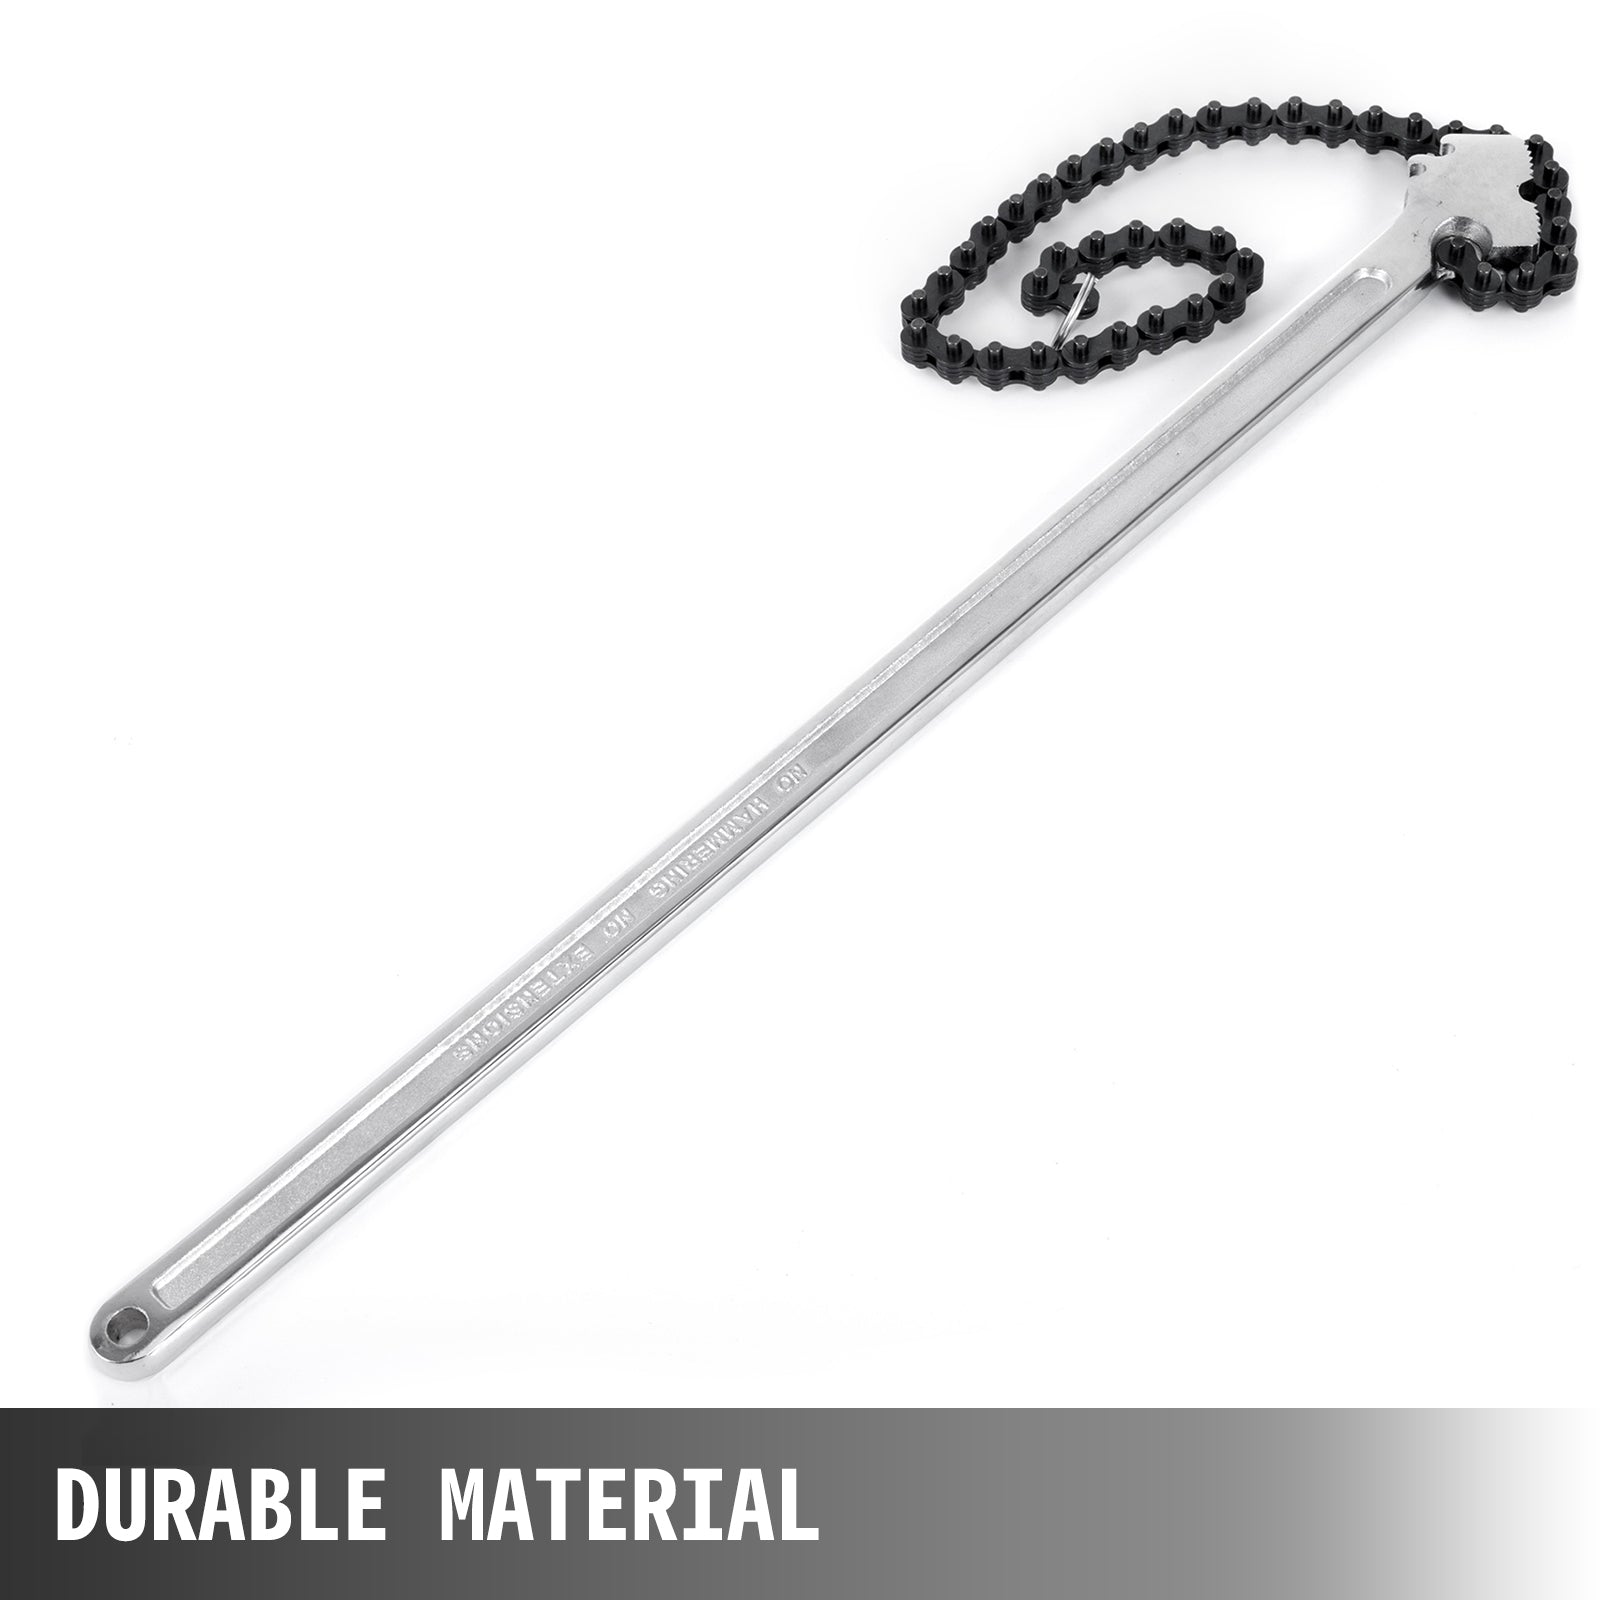 24 Inch Handle Heavy Duty Chain Wrench 560mm Chain Pipe Wrench Sliver Tone